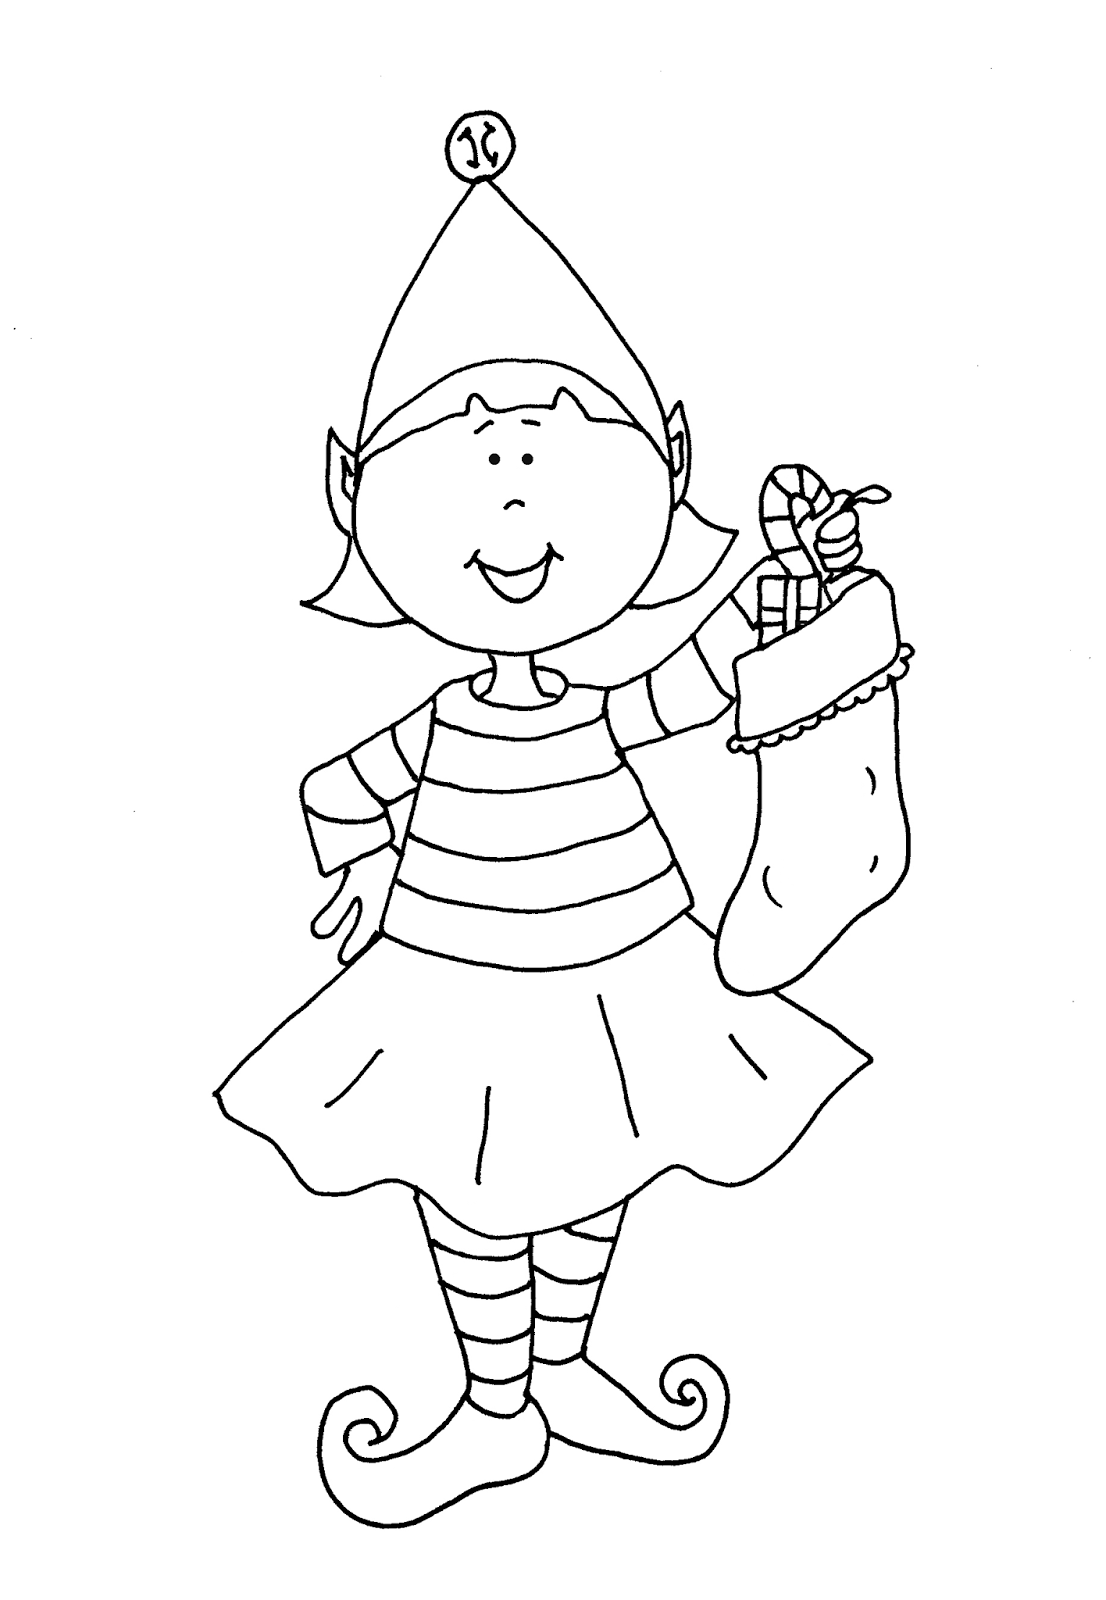 Christmas Coloring Pages Elf On The Shelf With Cool Girl It S Here Pictures To